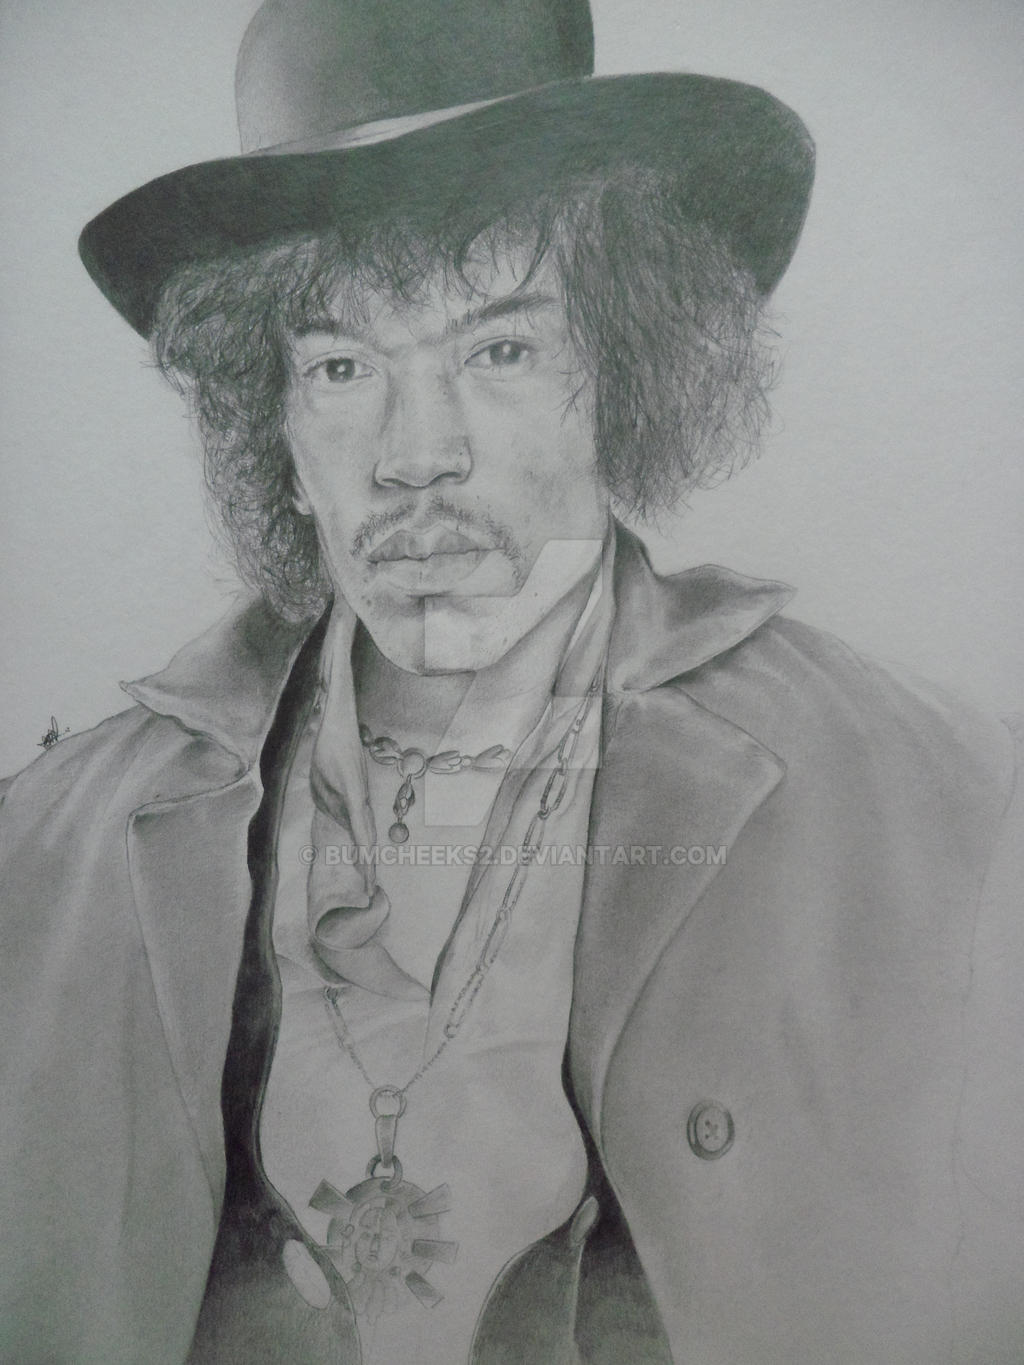 JIMI HENDRIX TRIBUTE TO A LEGEND by BUMCHEEKS2